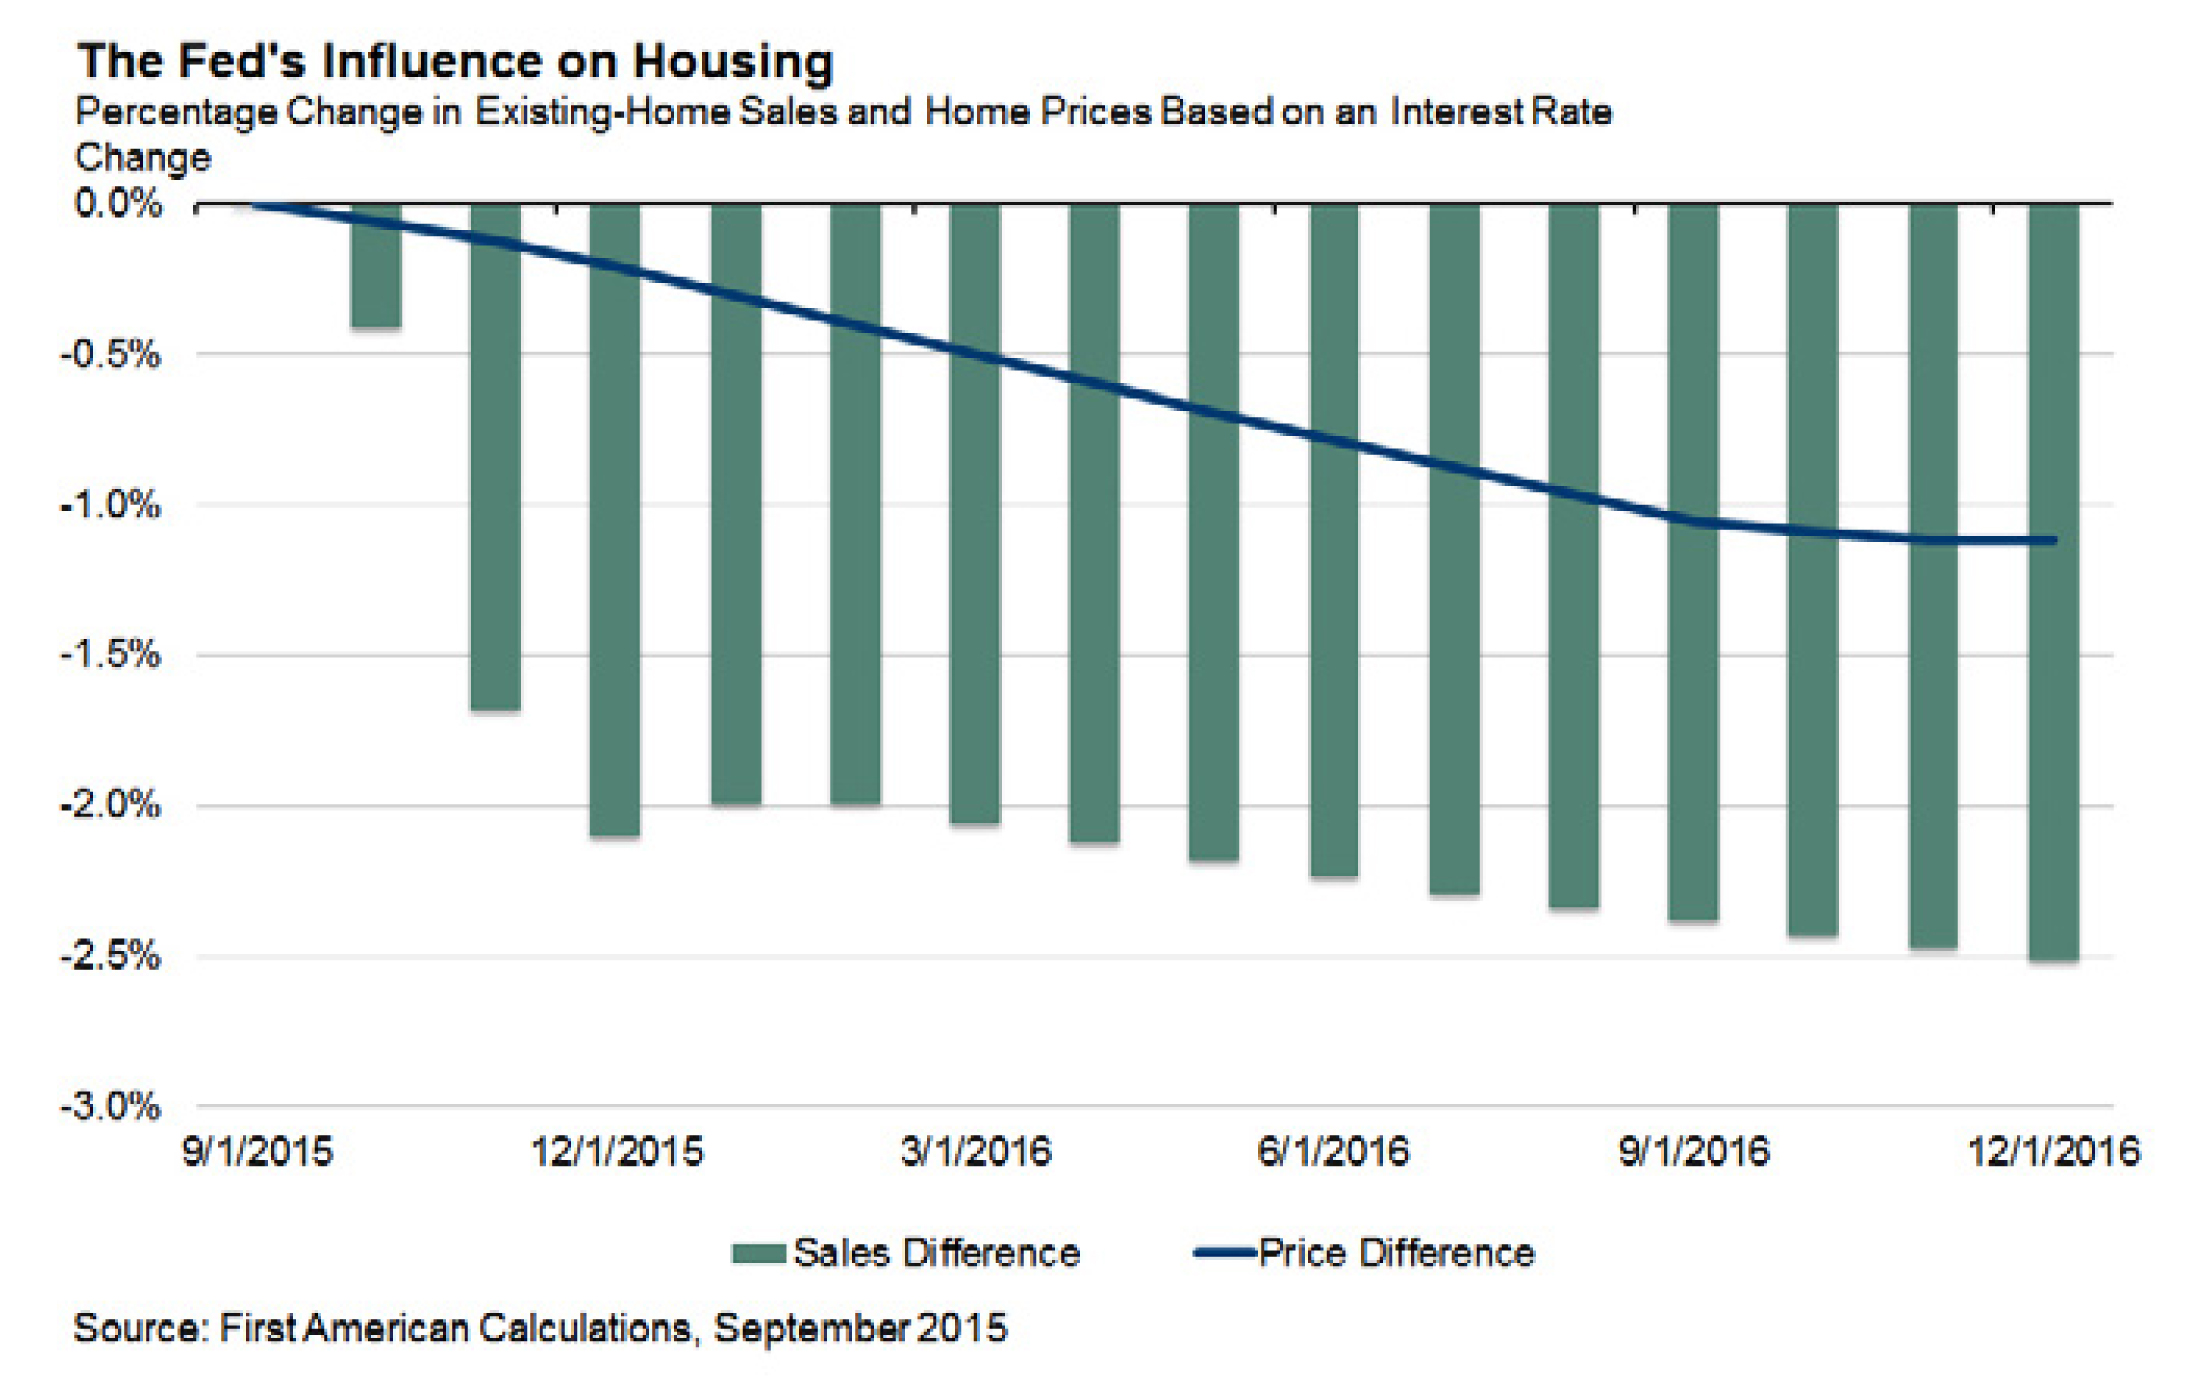 Feds influence on housing 2